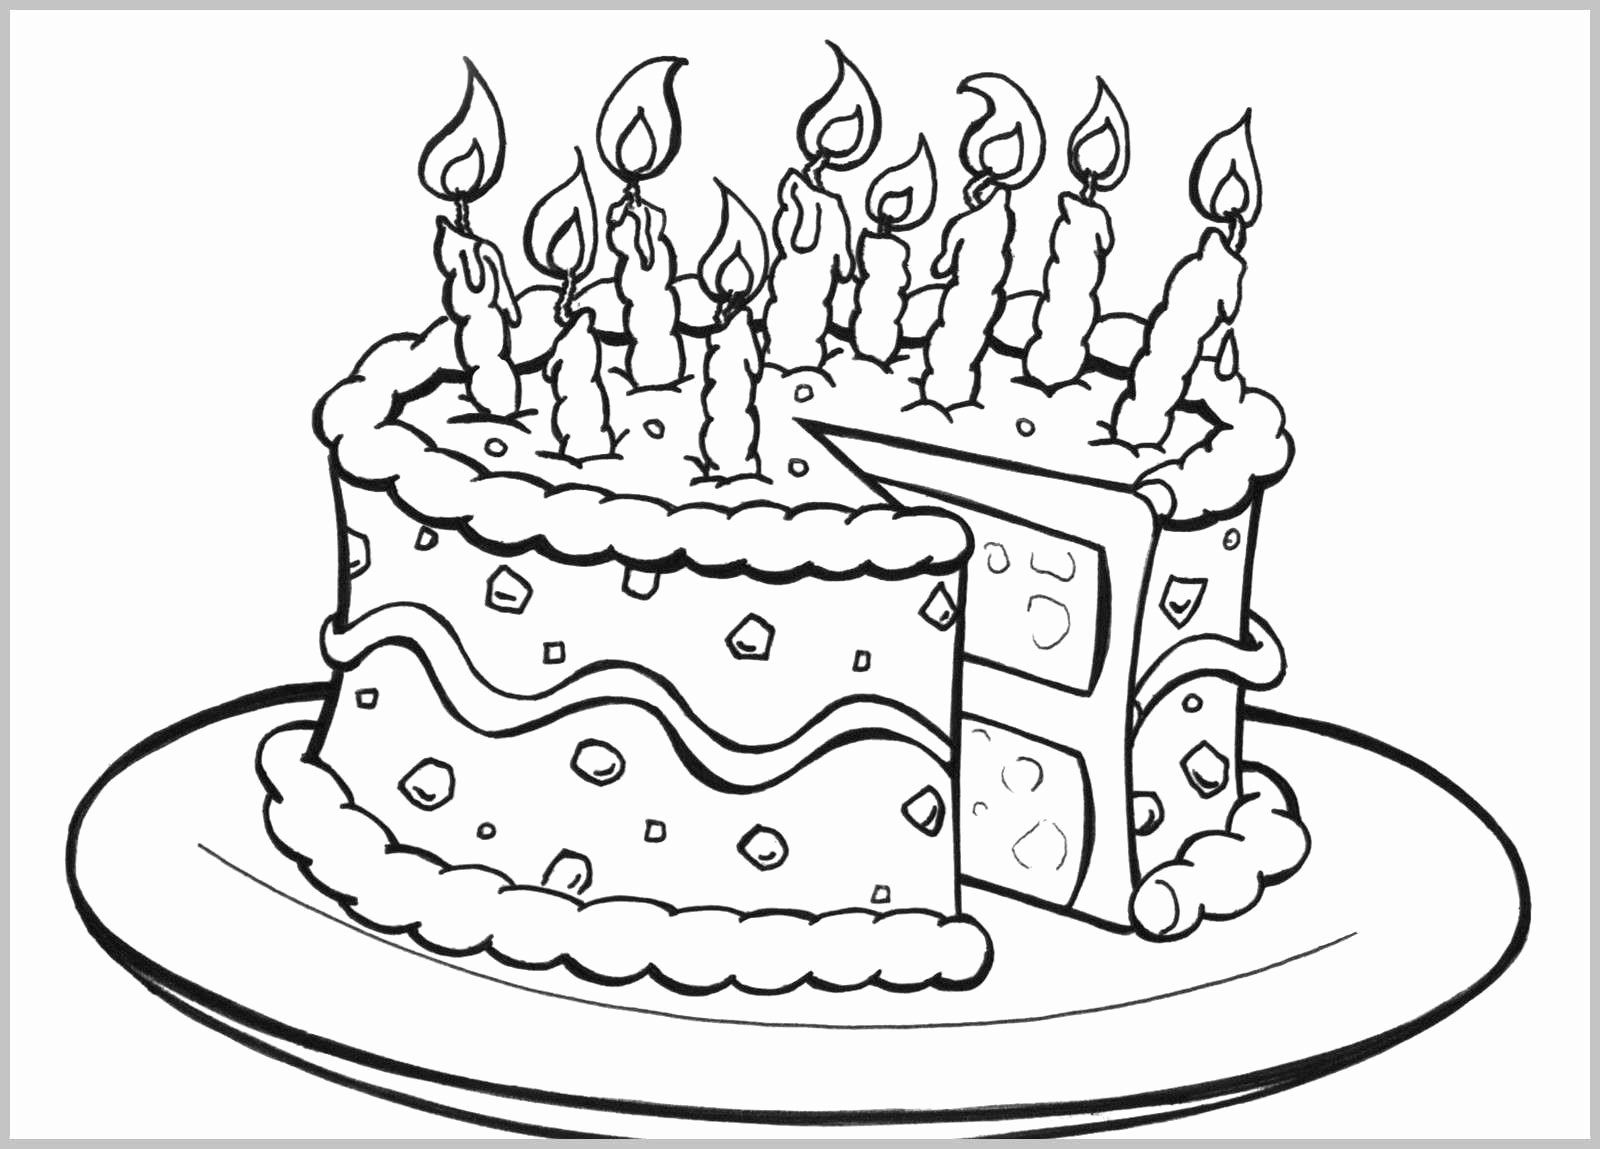 Birthday Cake Coloring Page Free Inspirational Of Birthday Cake Coloring Page Birthday Coloring Pages Happy Birthday Coloring Pages Birthday Cake Illustration